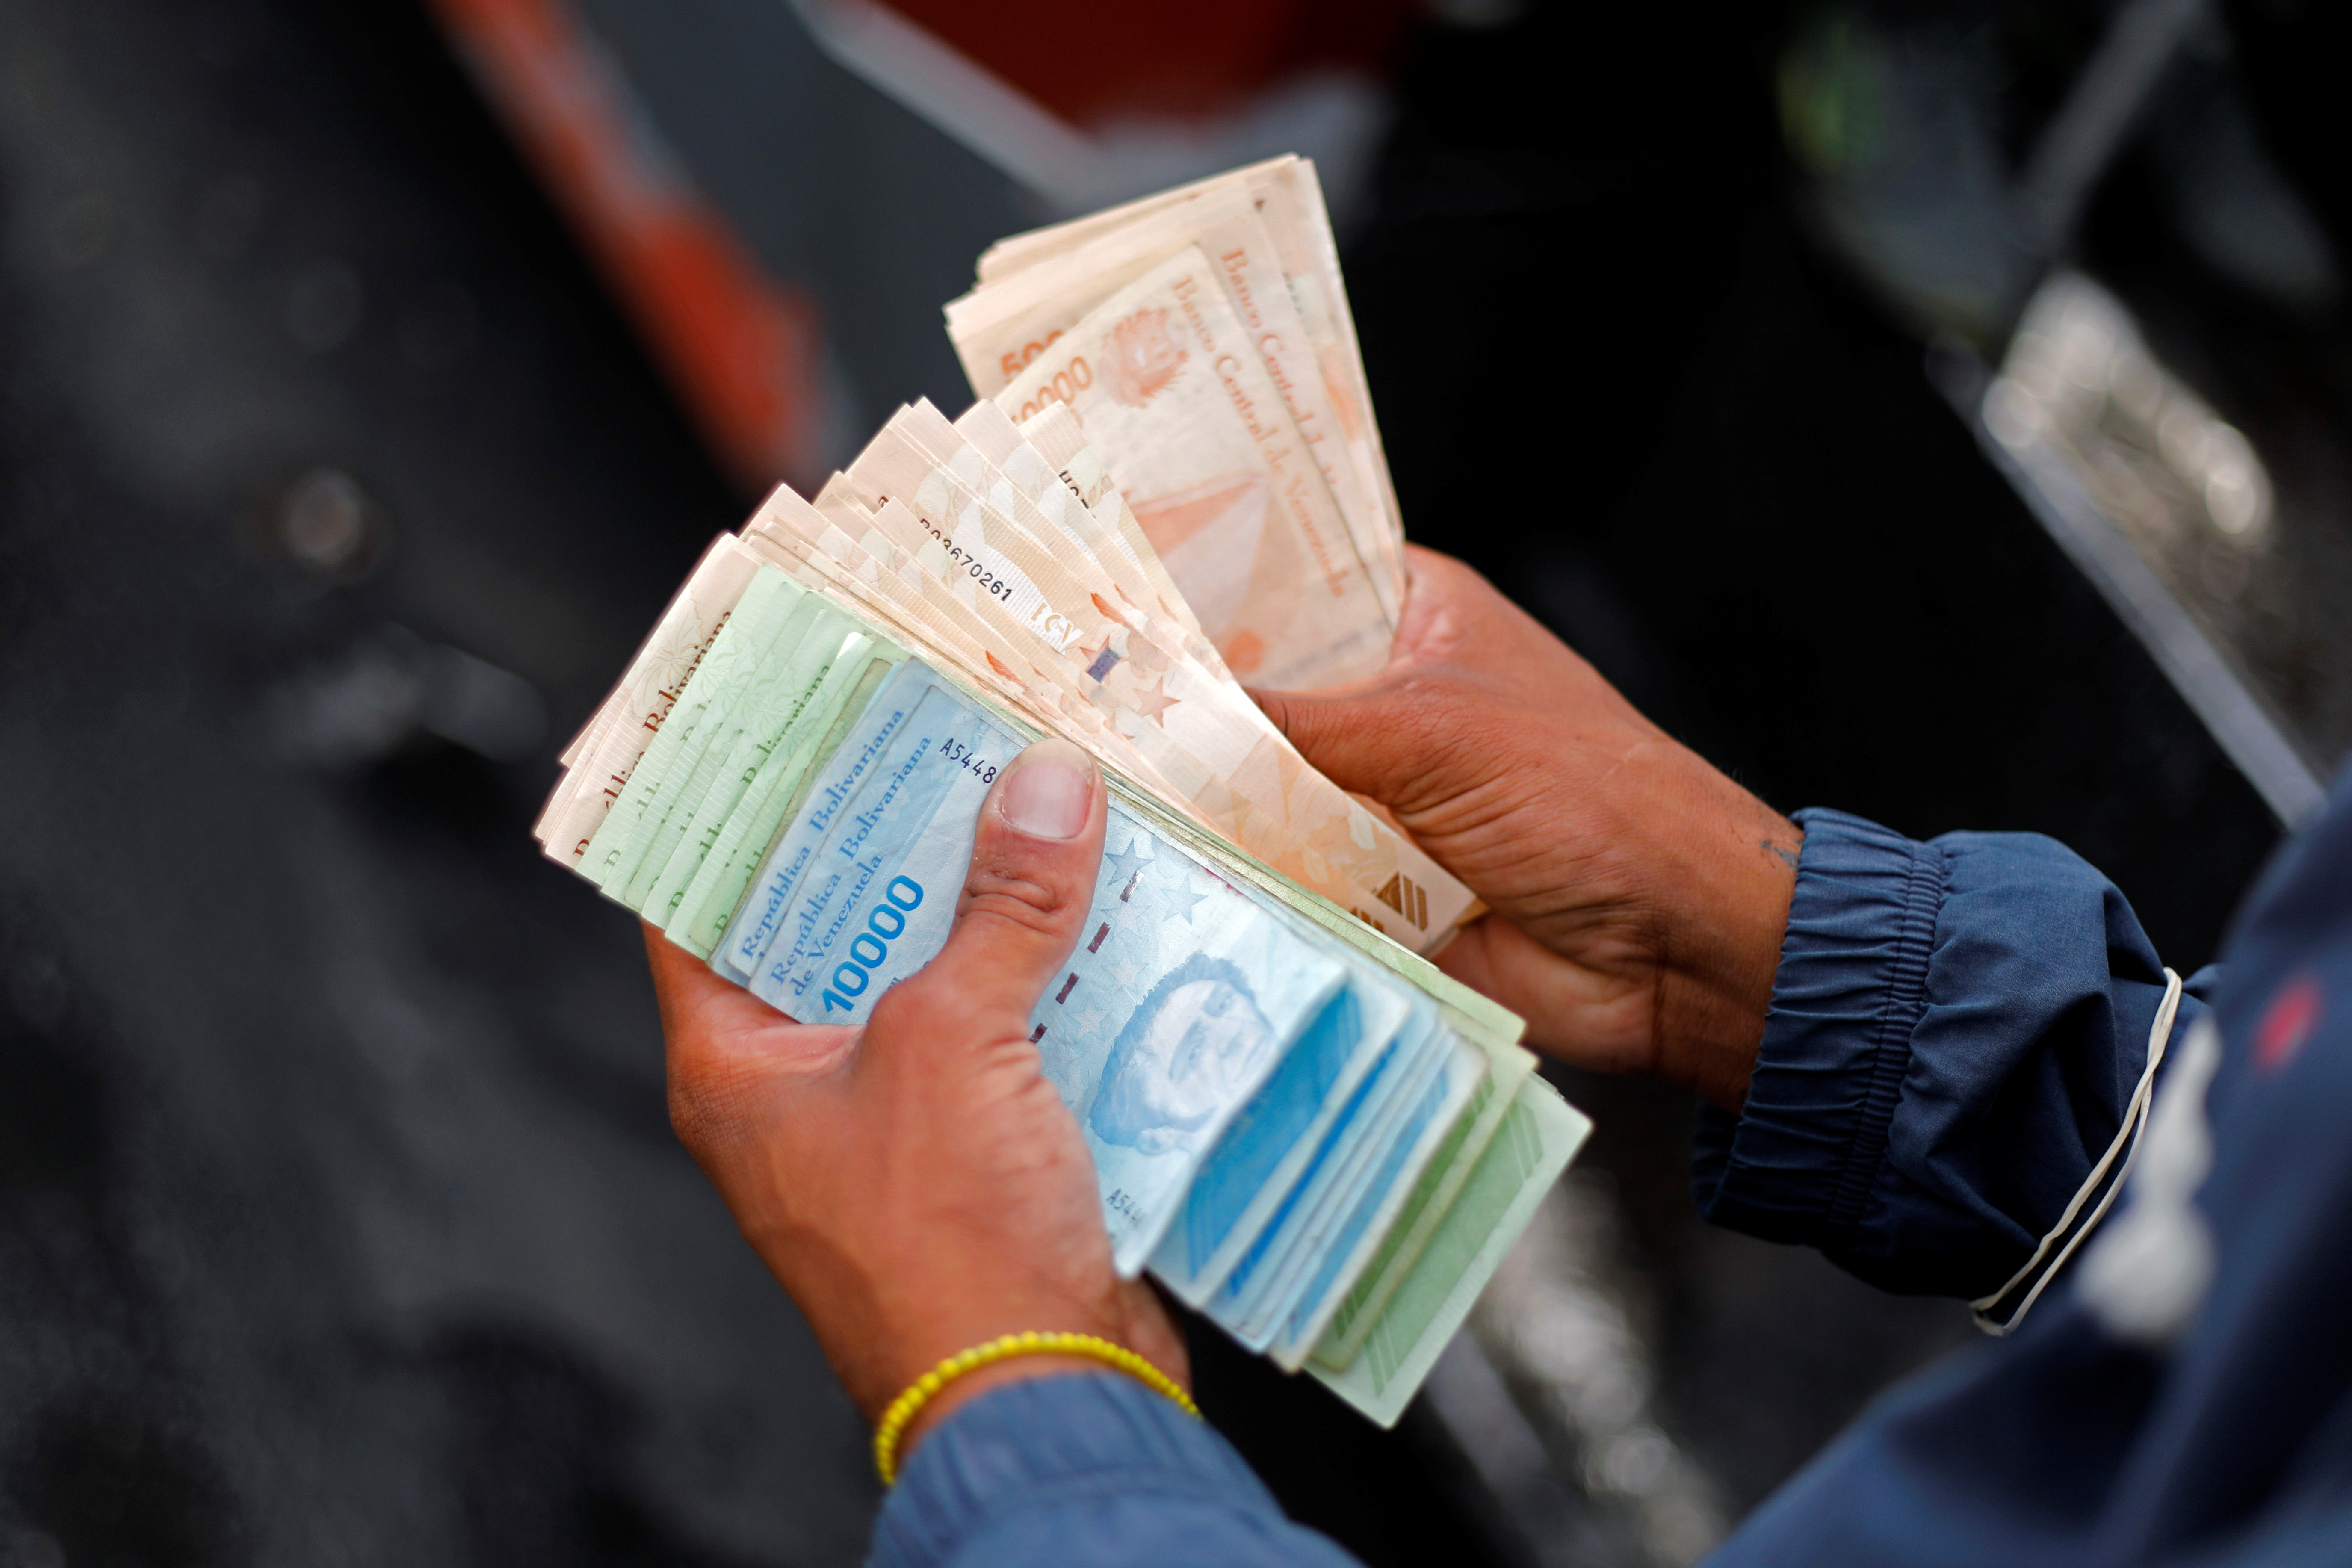 A bus driver's assistant counts a wad of Bolivar banknotes at a bus stop outside the Antimano metro station in Caracas, Venezuela, March 9, 2021. Picture taken March 9, 2021. REUTERS/Leonardo Fernandez Viloria